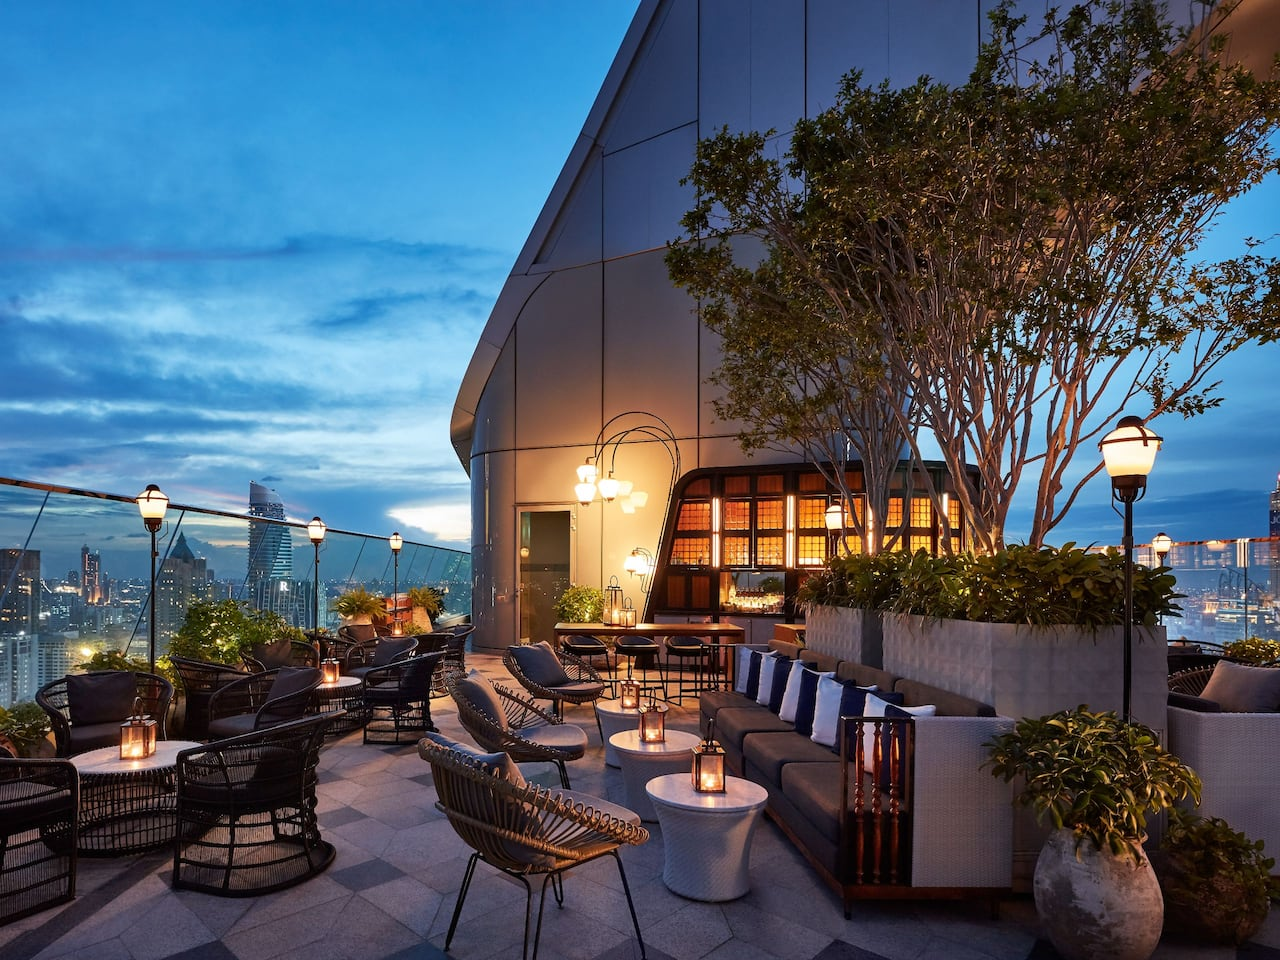 Penthouse Bar + Grill Chefs Table in Bangkok